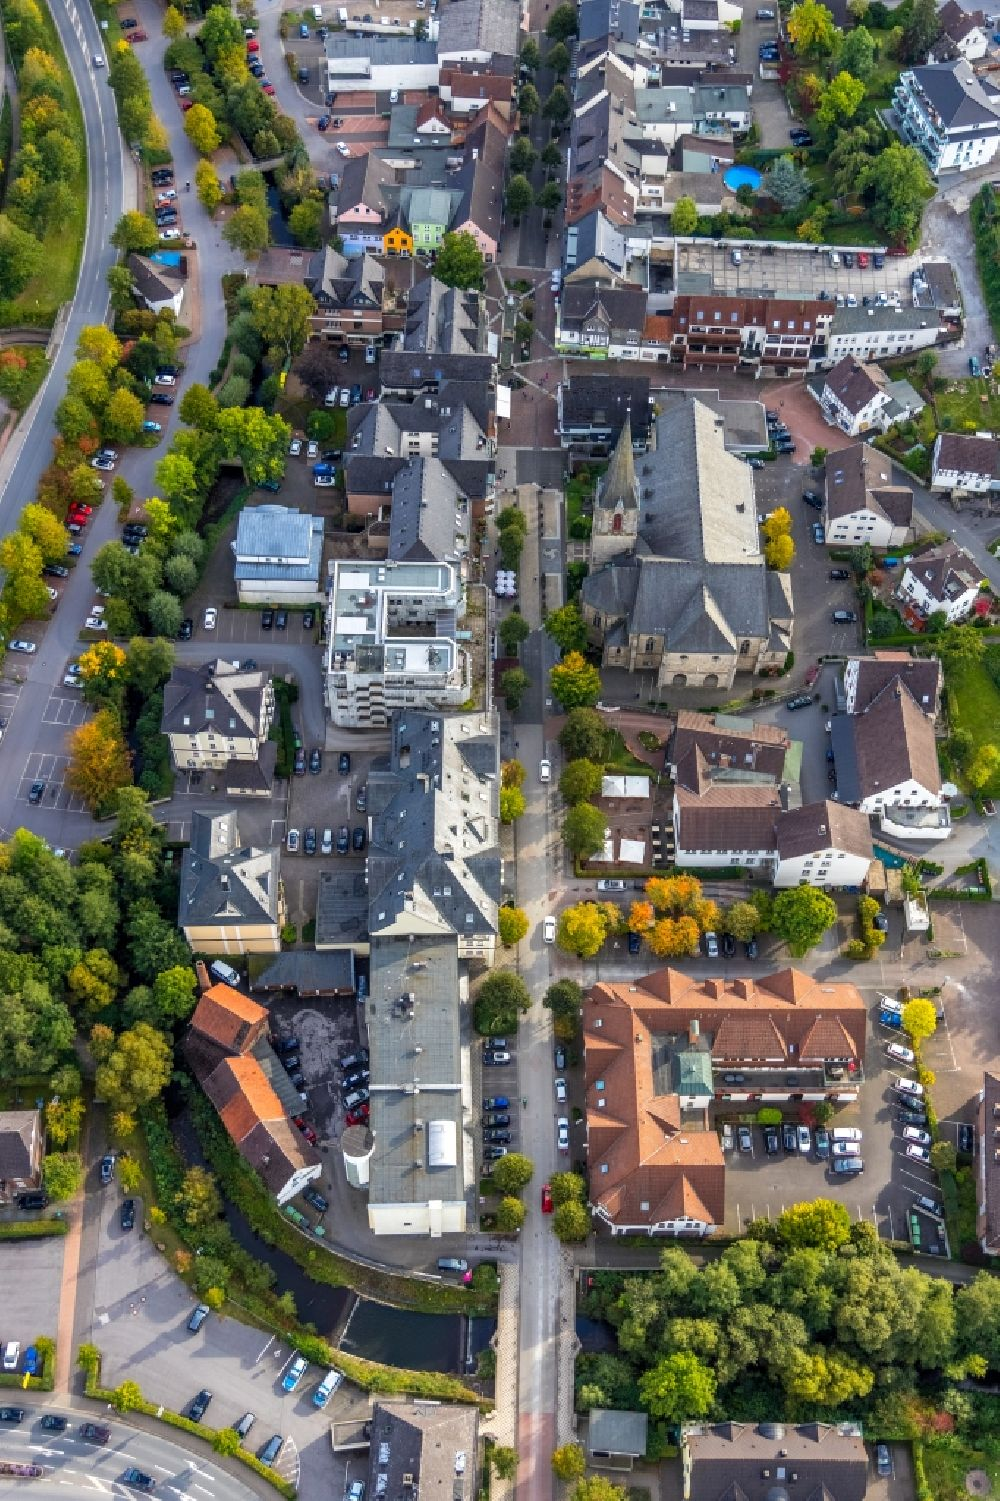 Sundern (Sauerland) from the bird's eye view: City view on down town on Hauptstrasse in Sundern (Sauerland) in the state North Rhine-Westphalia, Germany